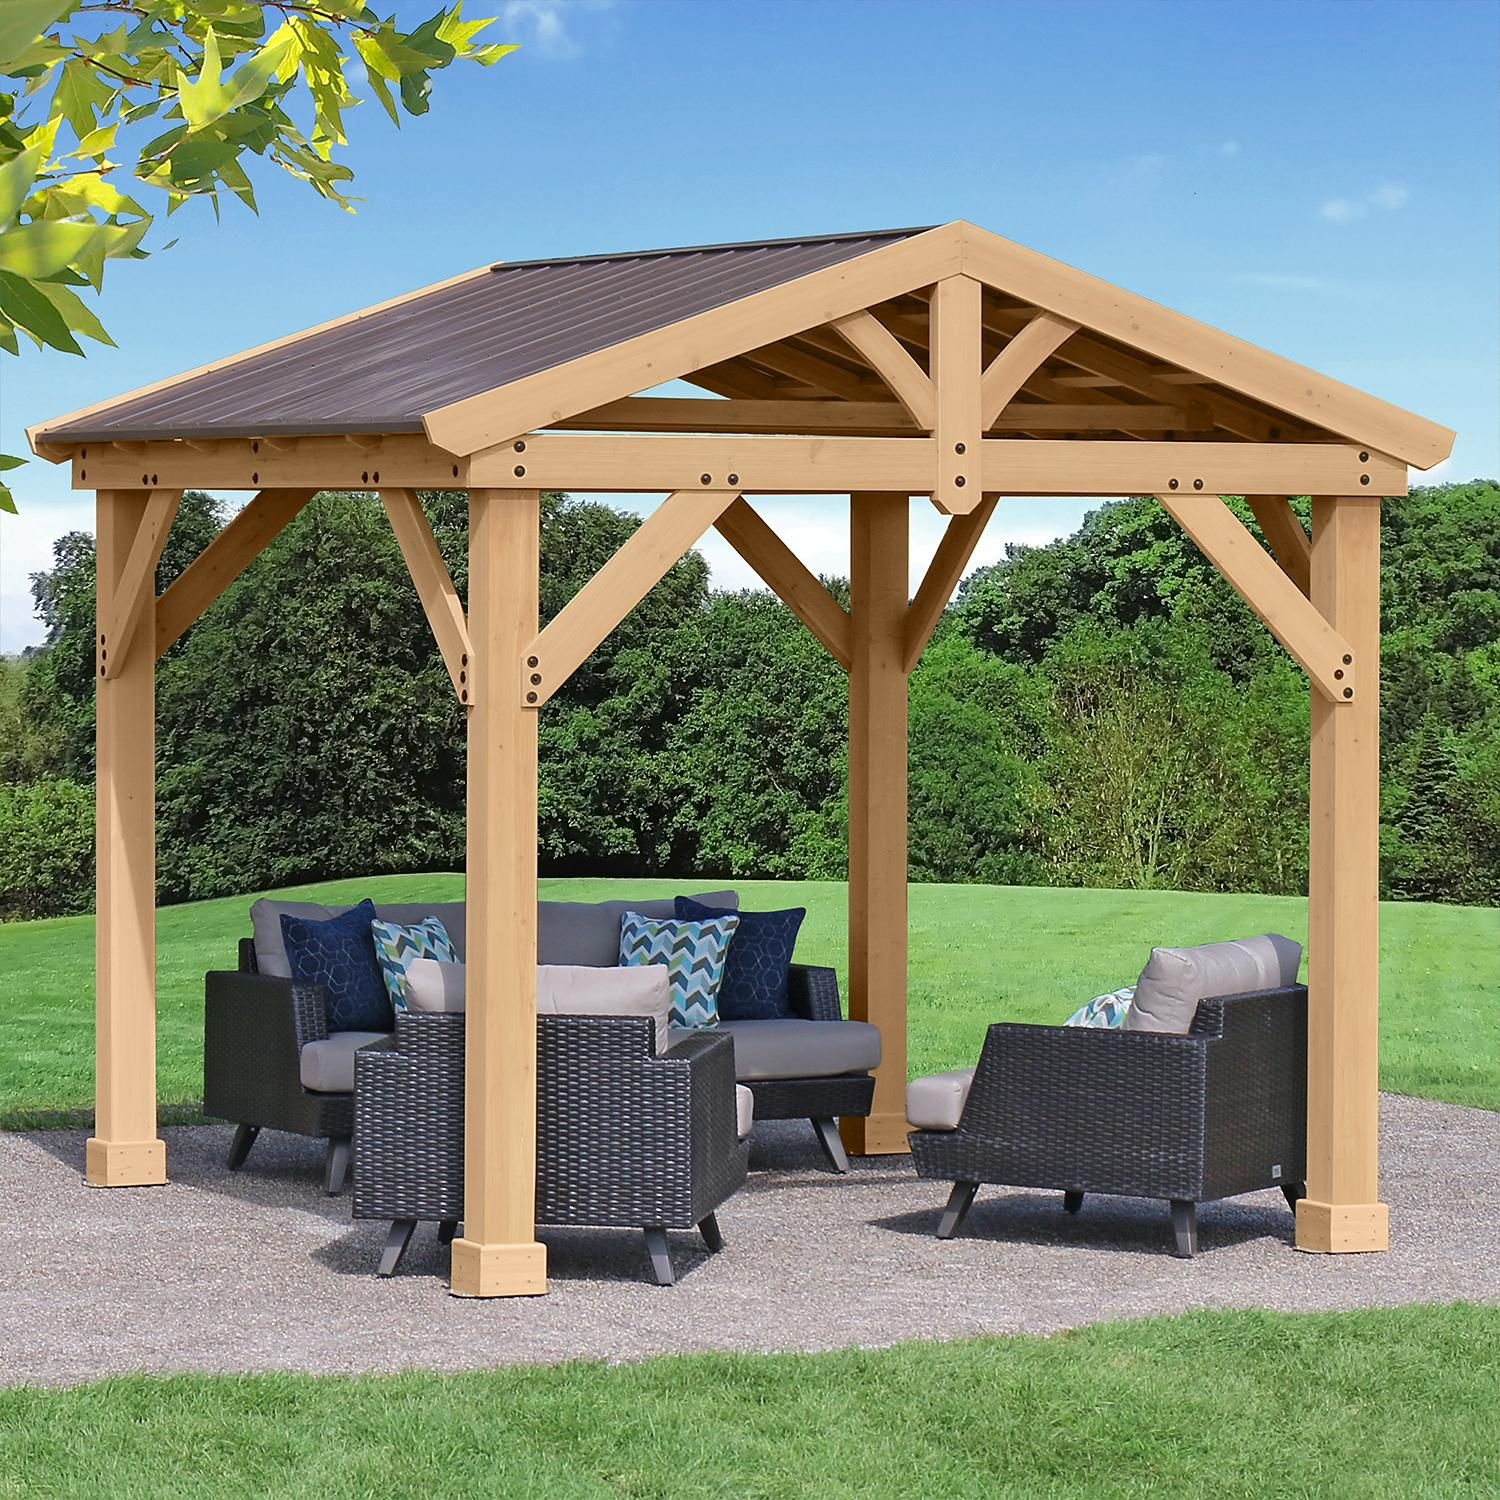 Yardistry 10 X 10 All Cedar Pavilion With Aluminum Roof Sam S Club In 2020 Backyard Pergola Aluminum Roof